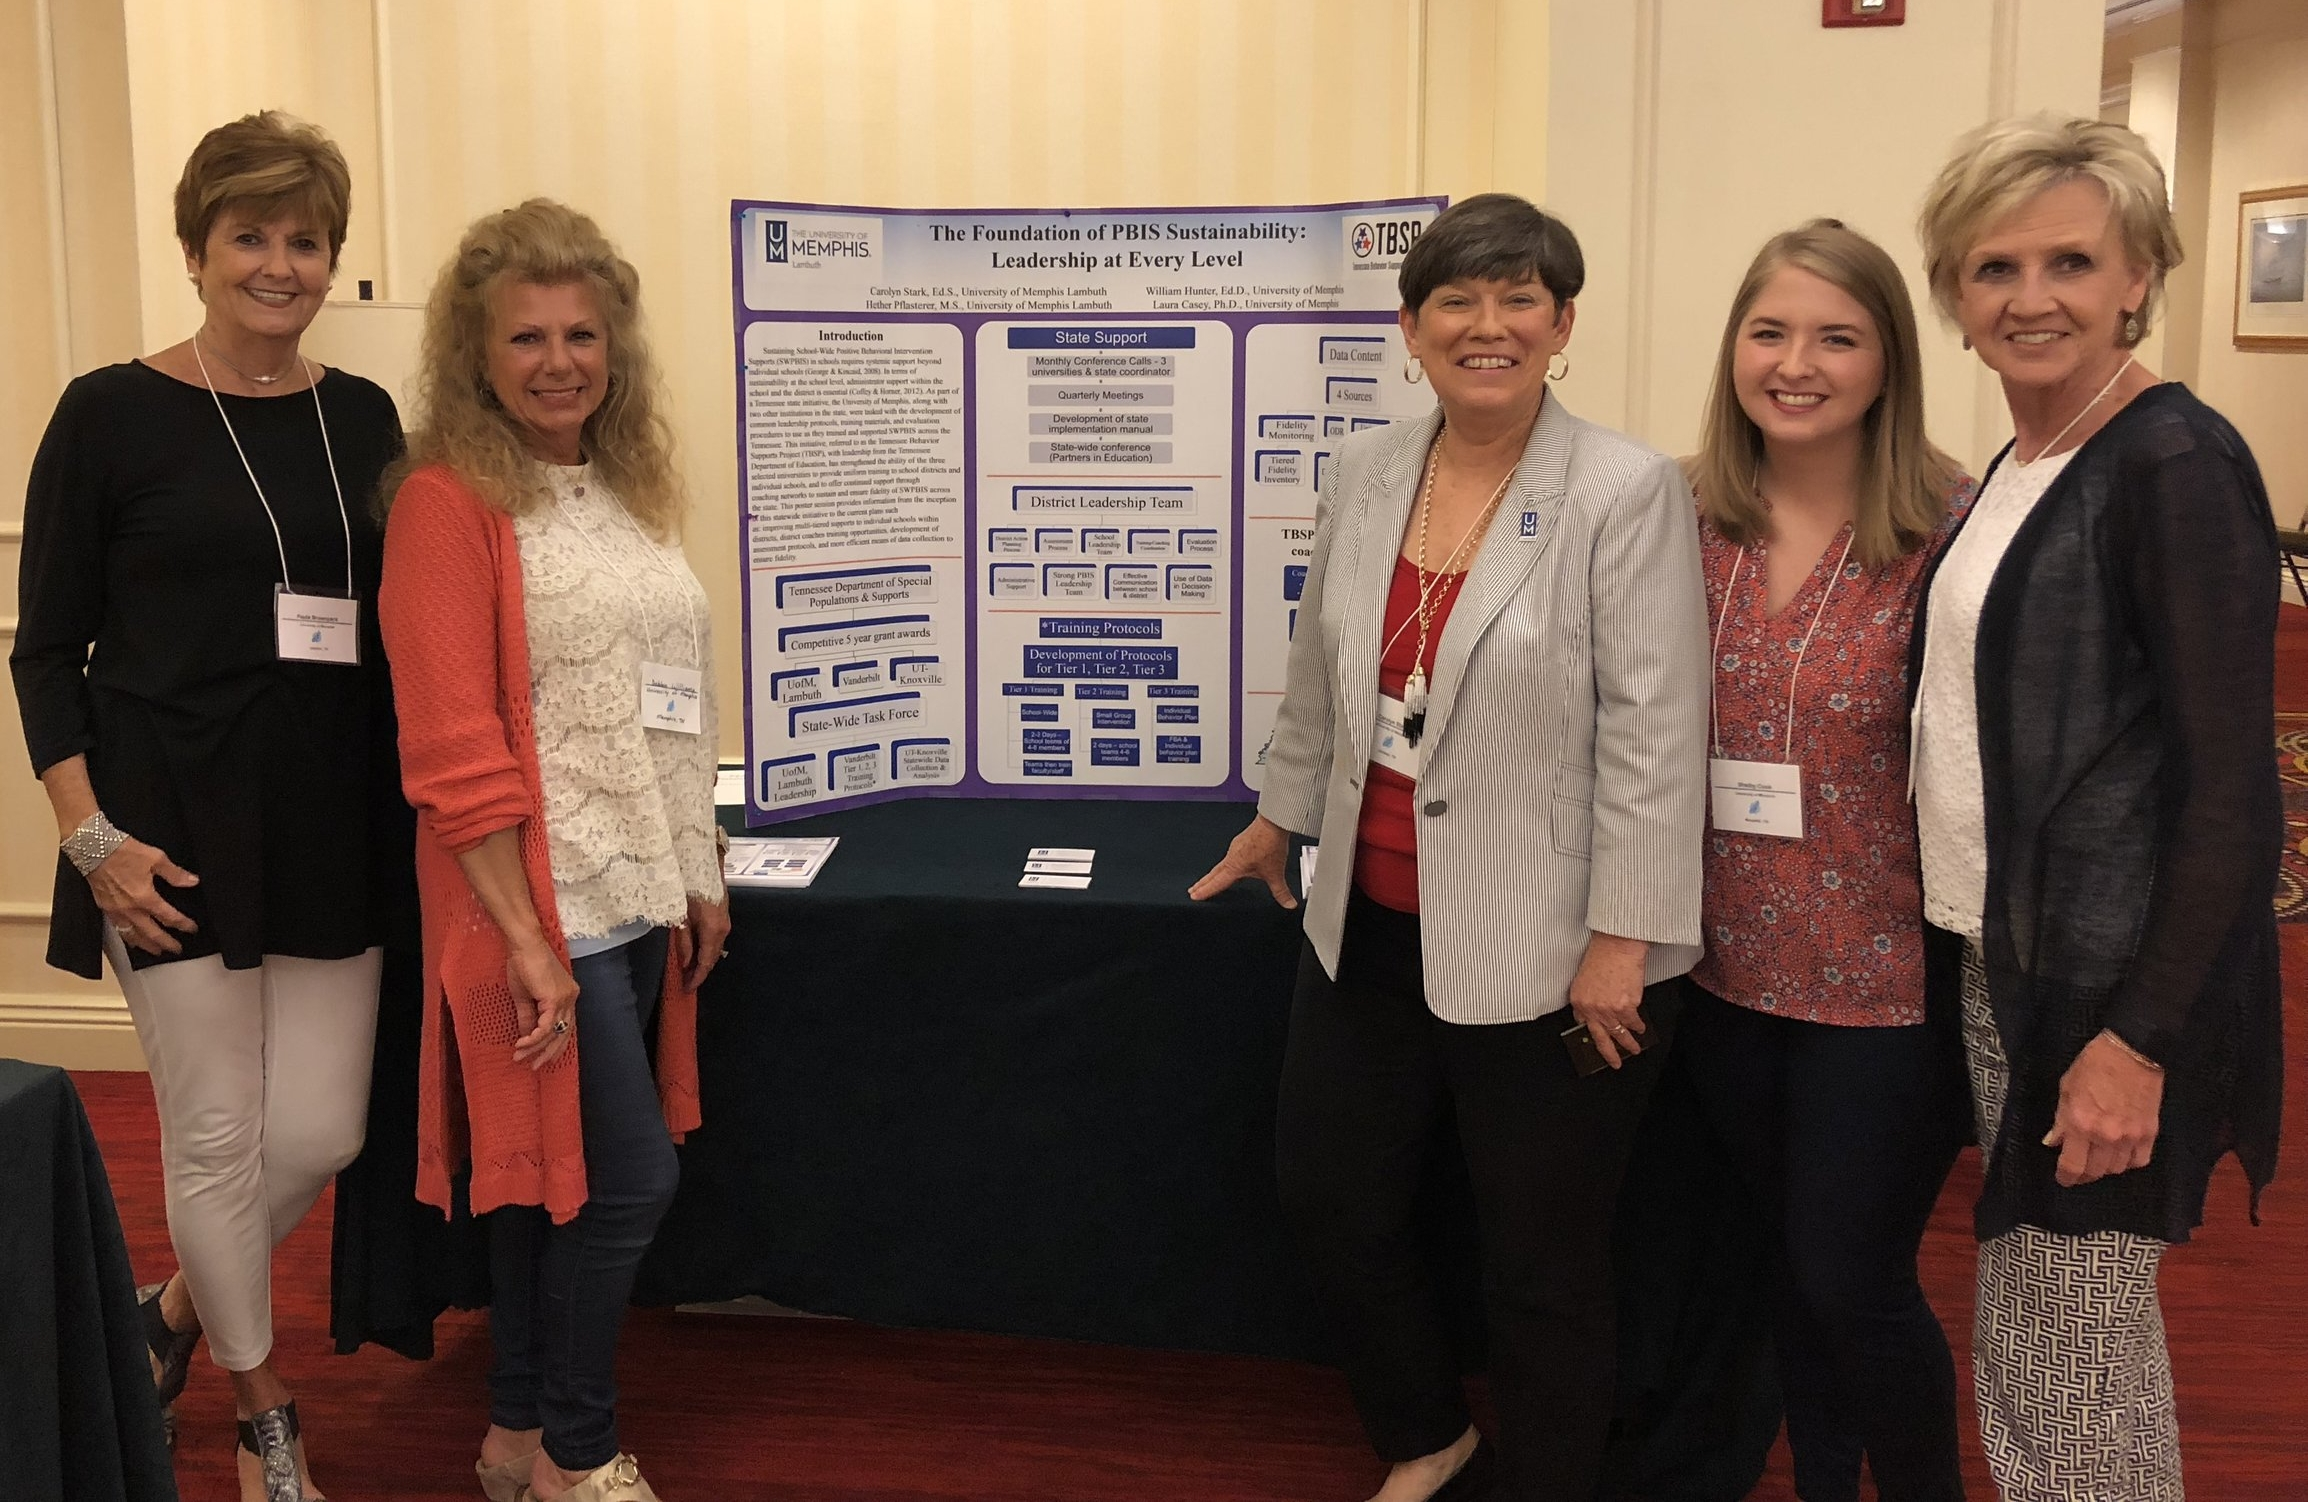 Team Members Paula Brownyard, Debbie Randolph, Carolyn Stark, Shelby Cook, and Sandra Harper pictured with our poster.